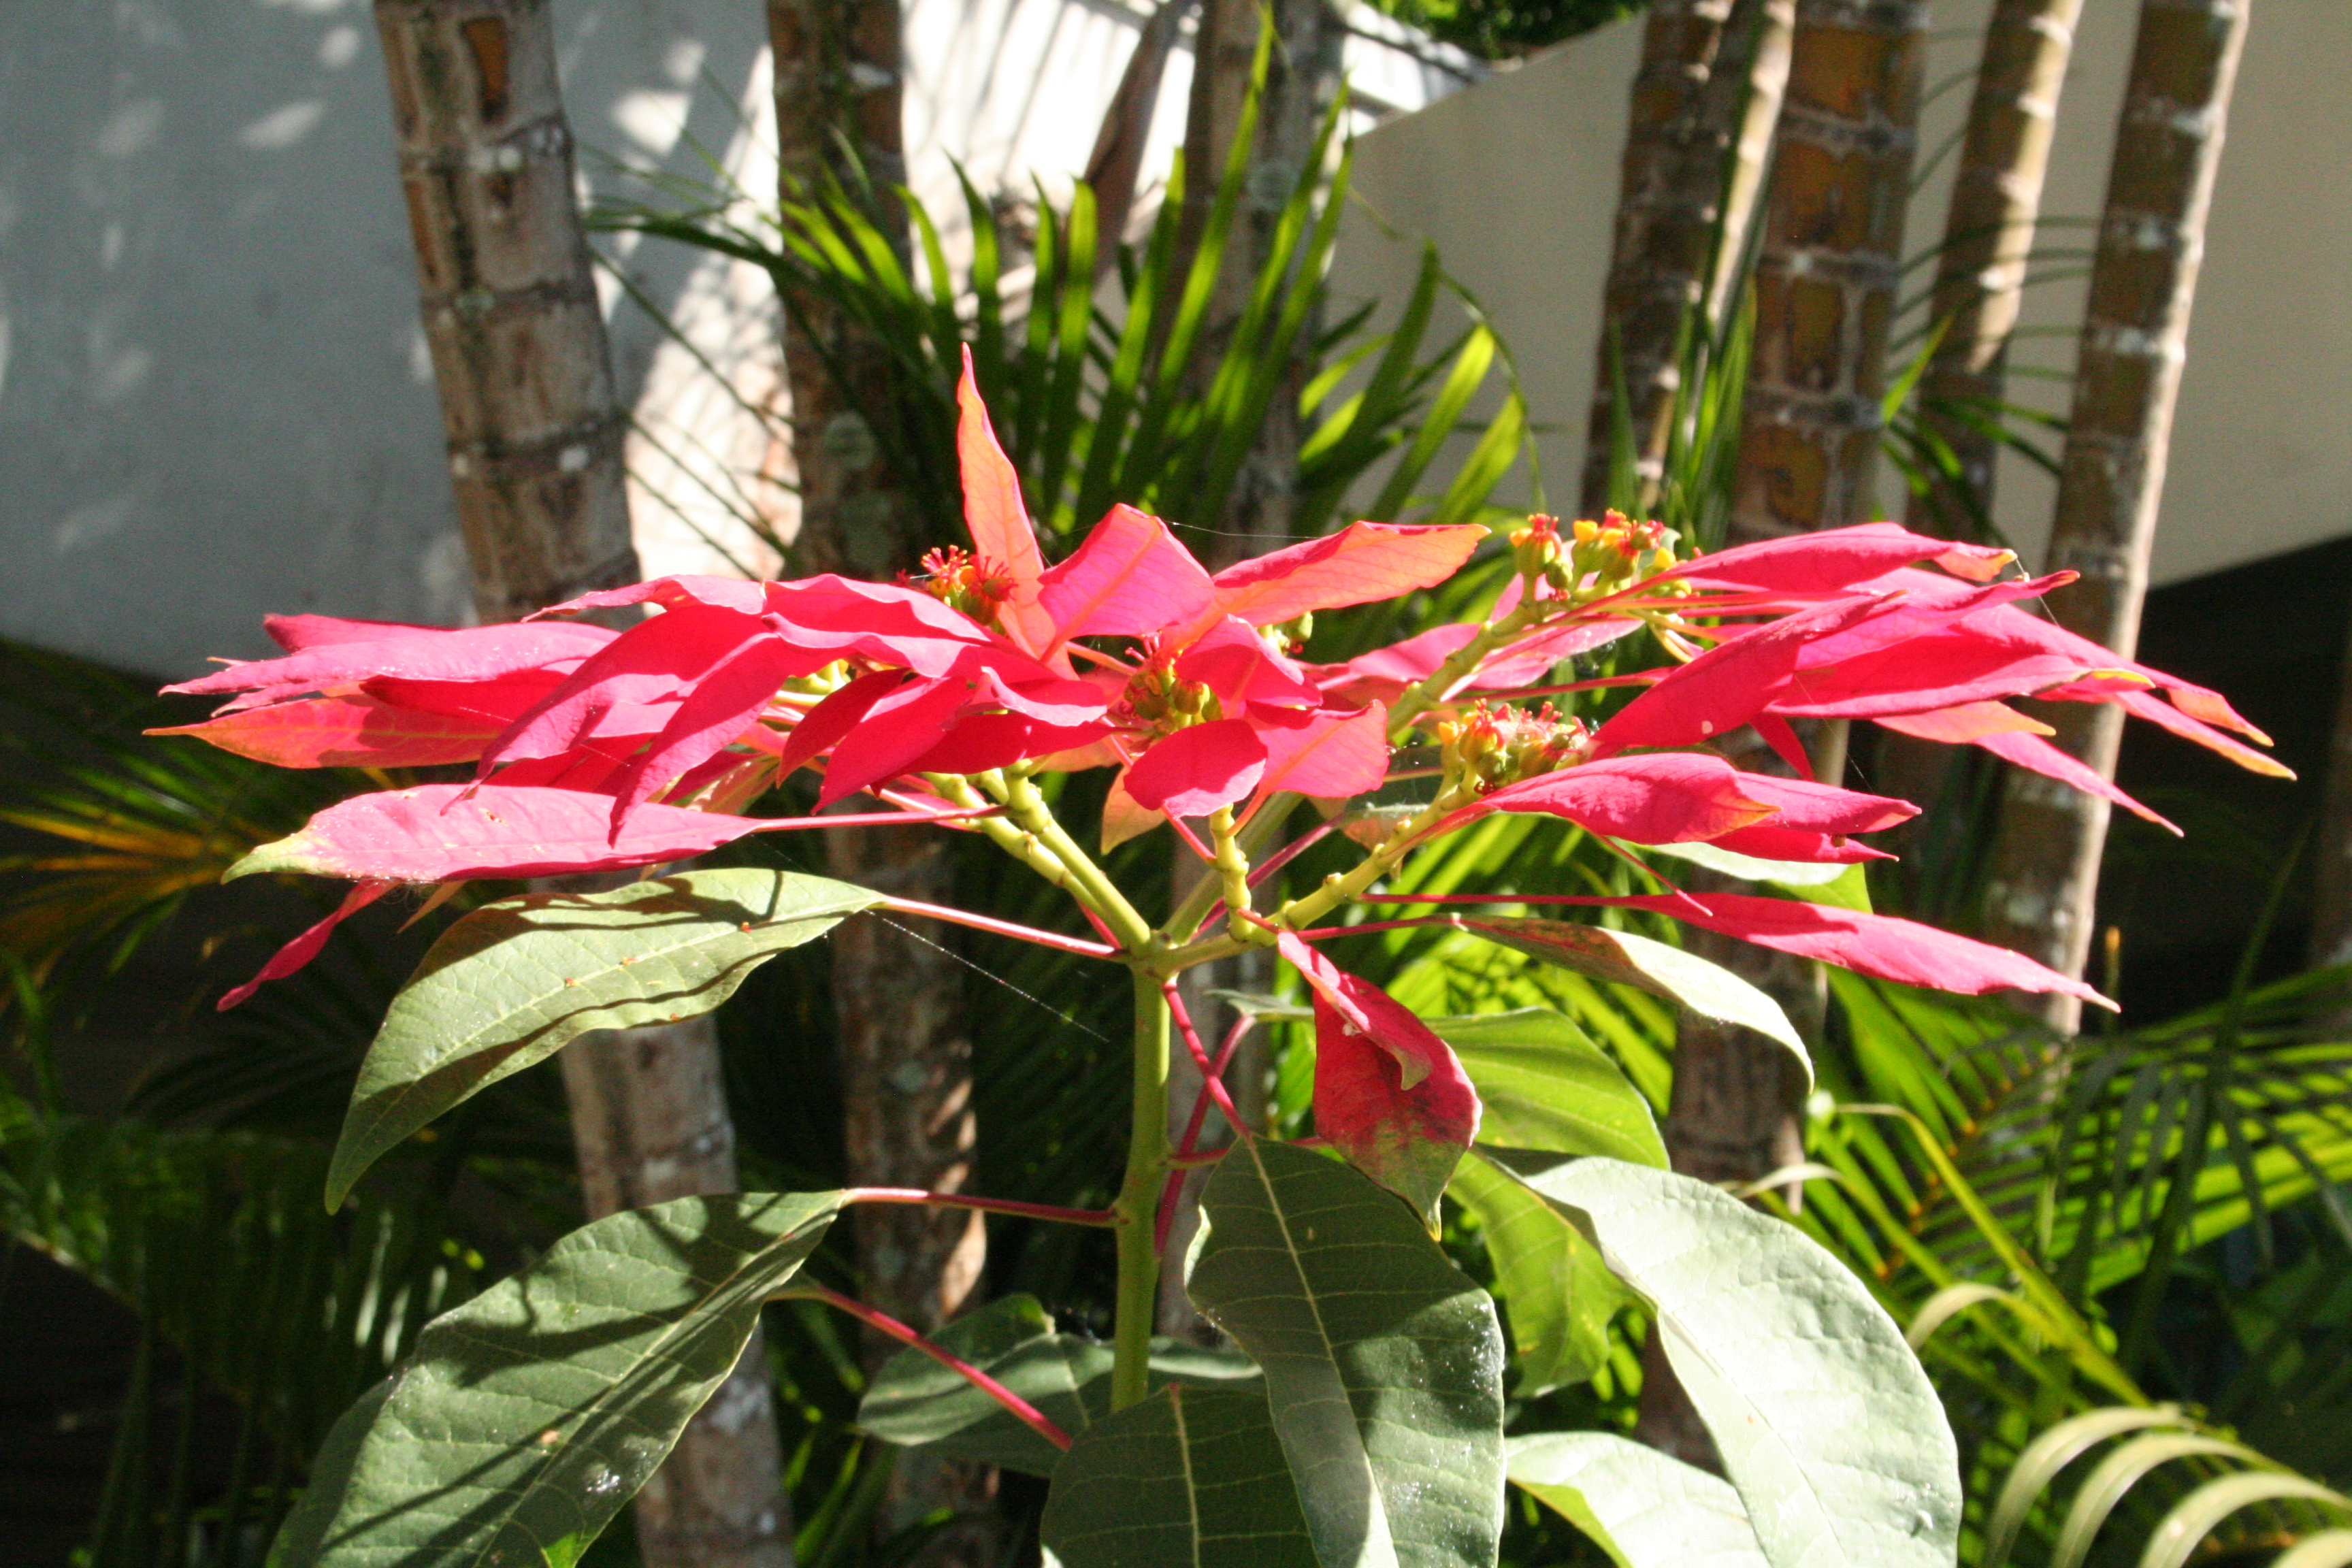 poinsettia plants in a garden